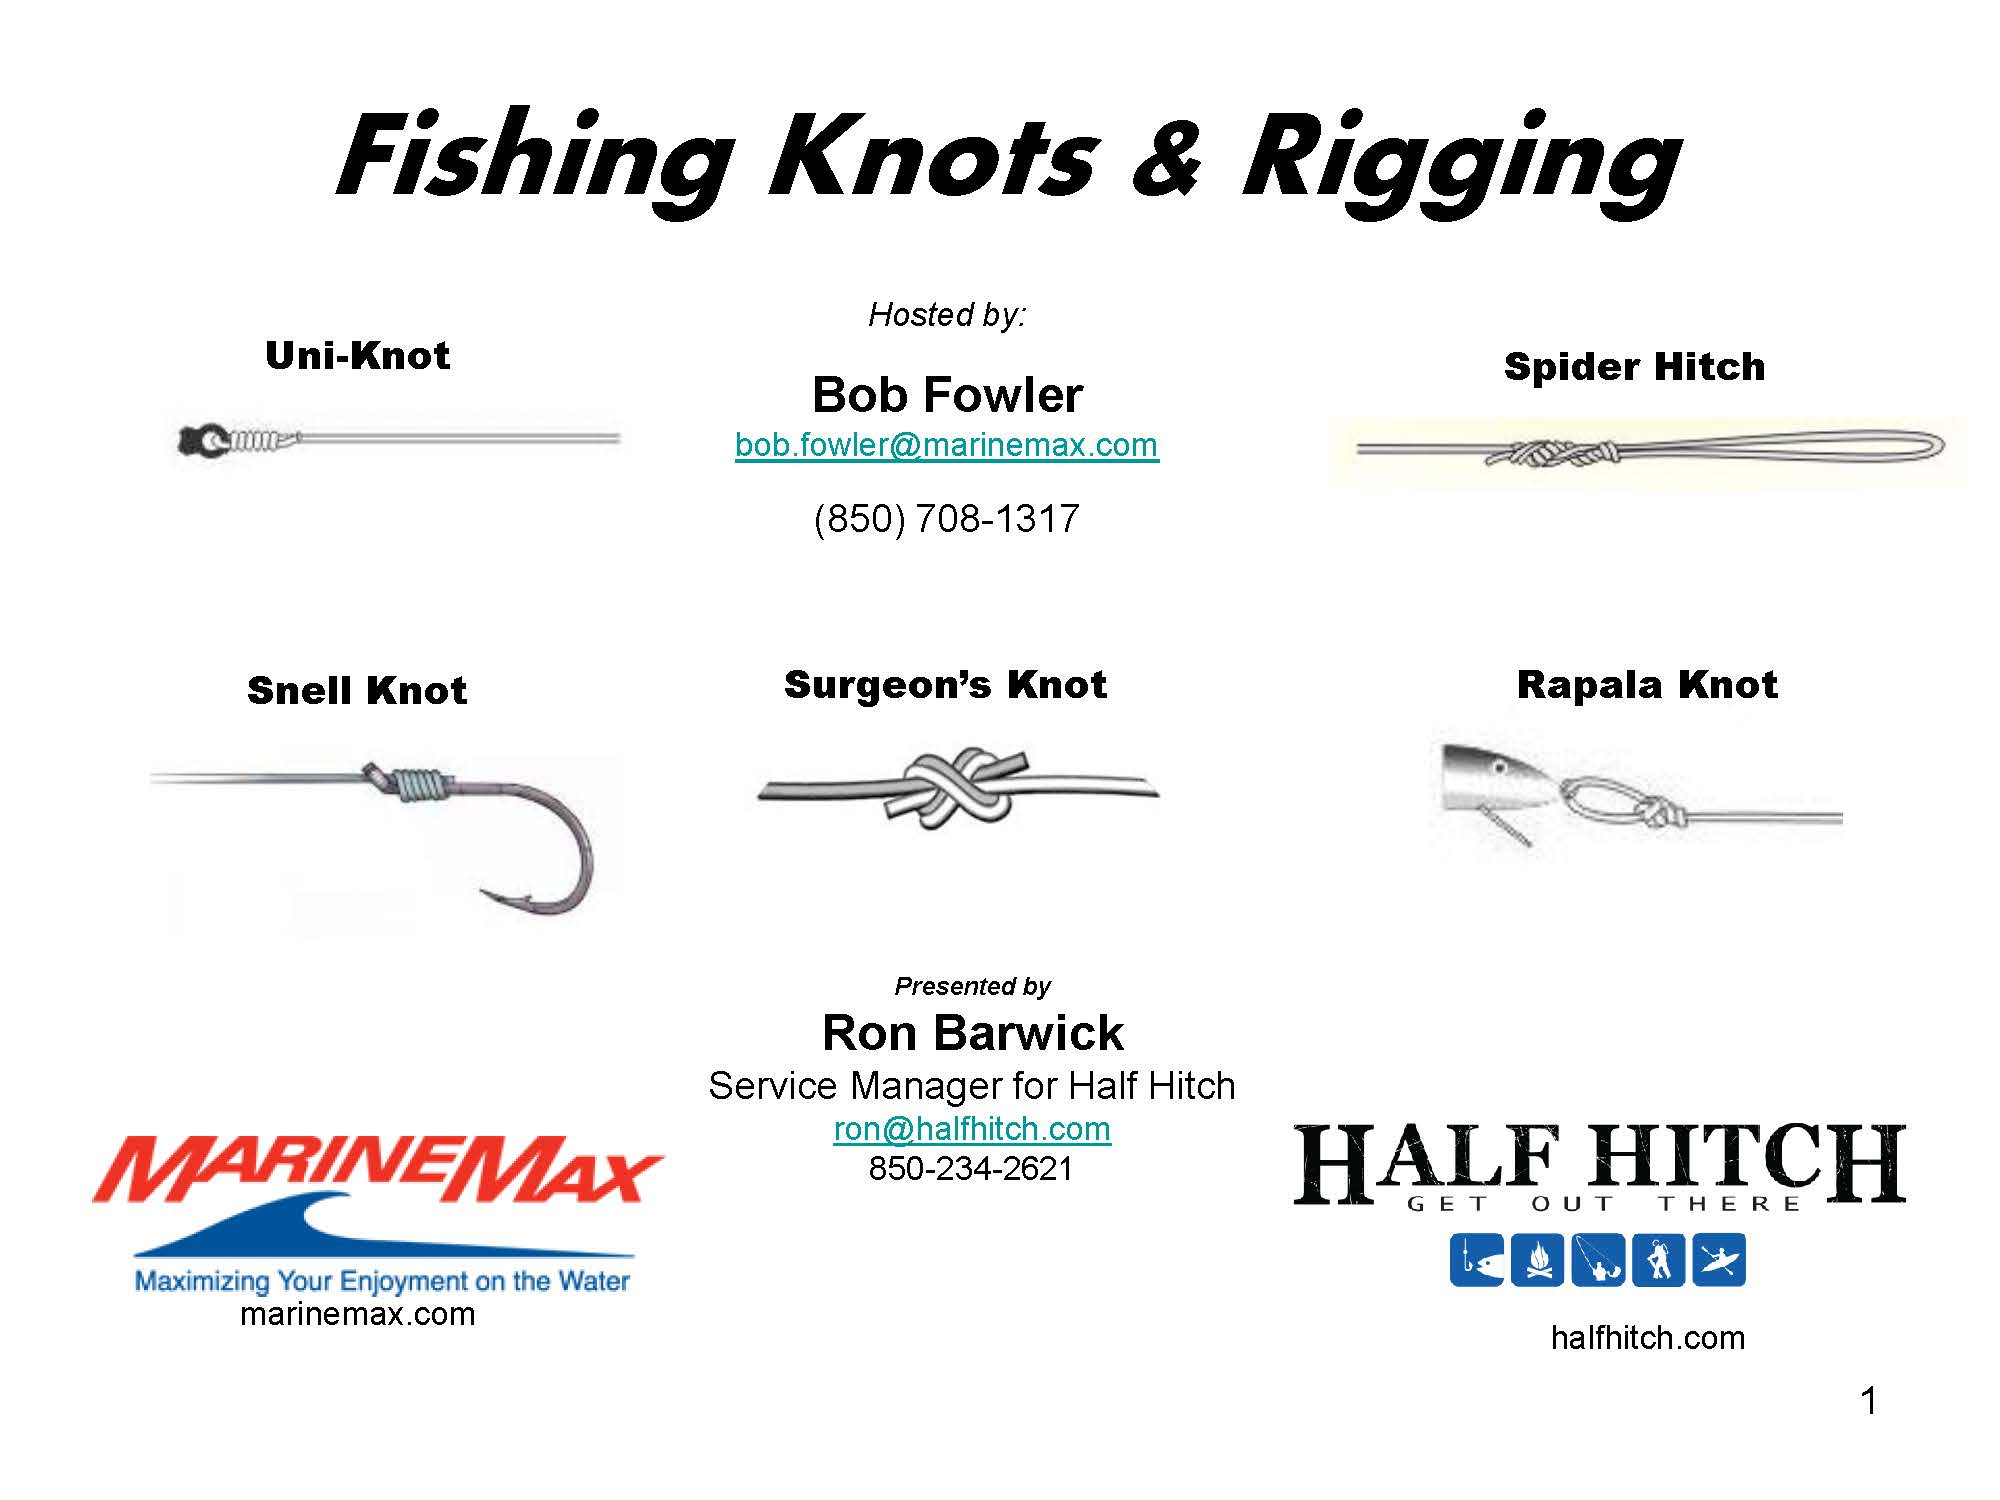 Fishing Knots & Rigging - HalfHitch.com | HalfHitch.com